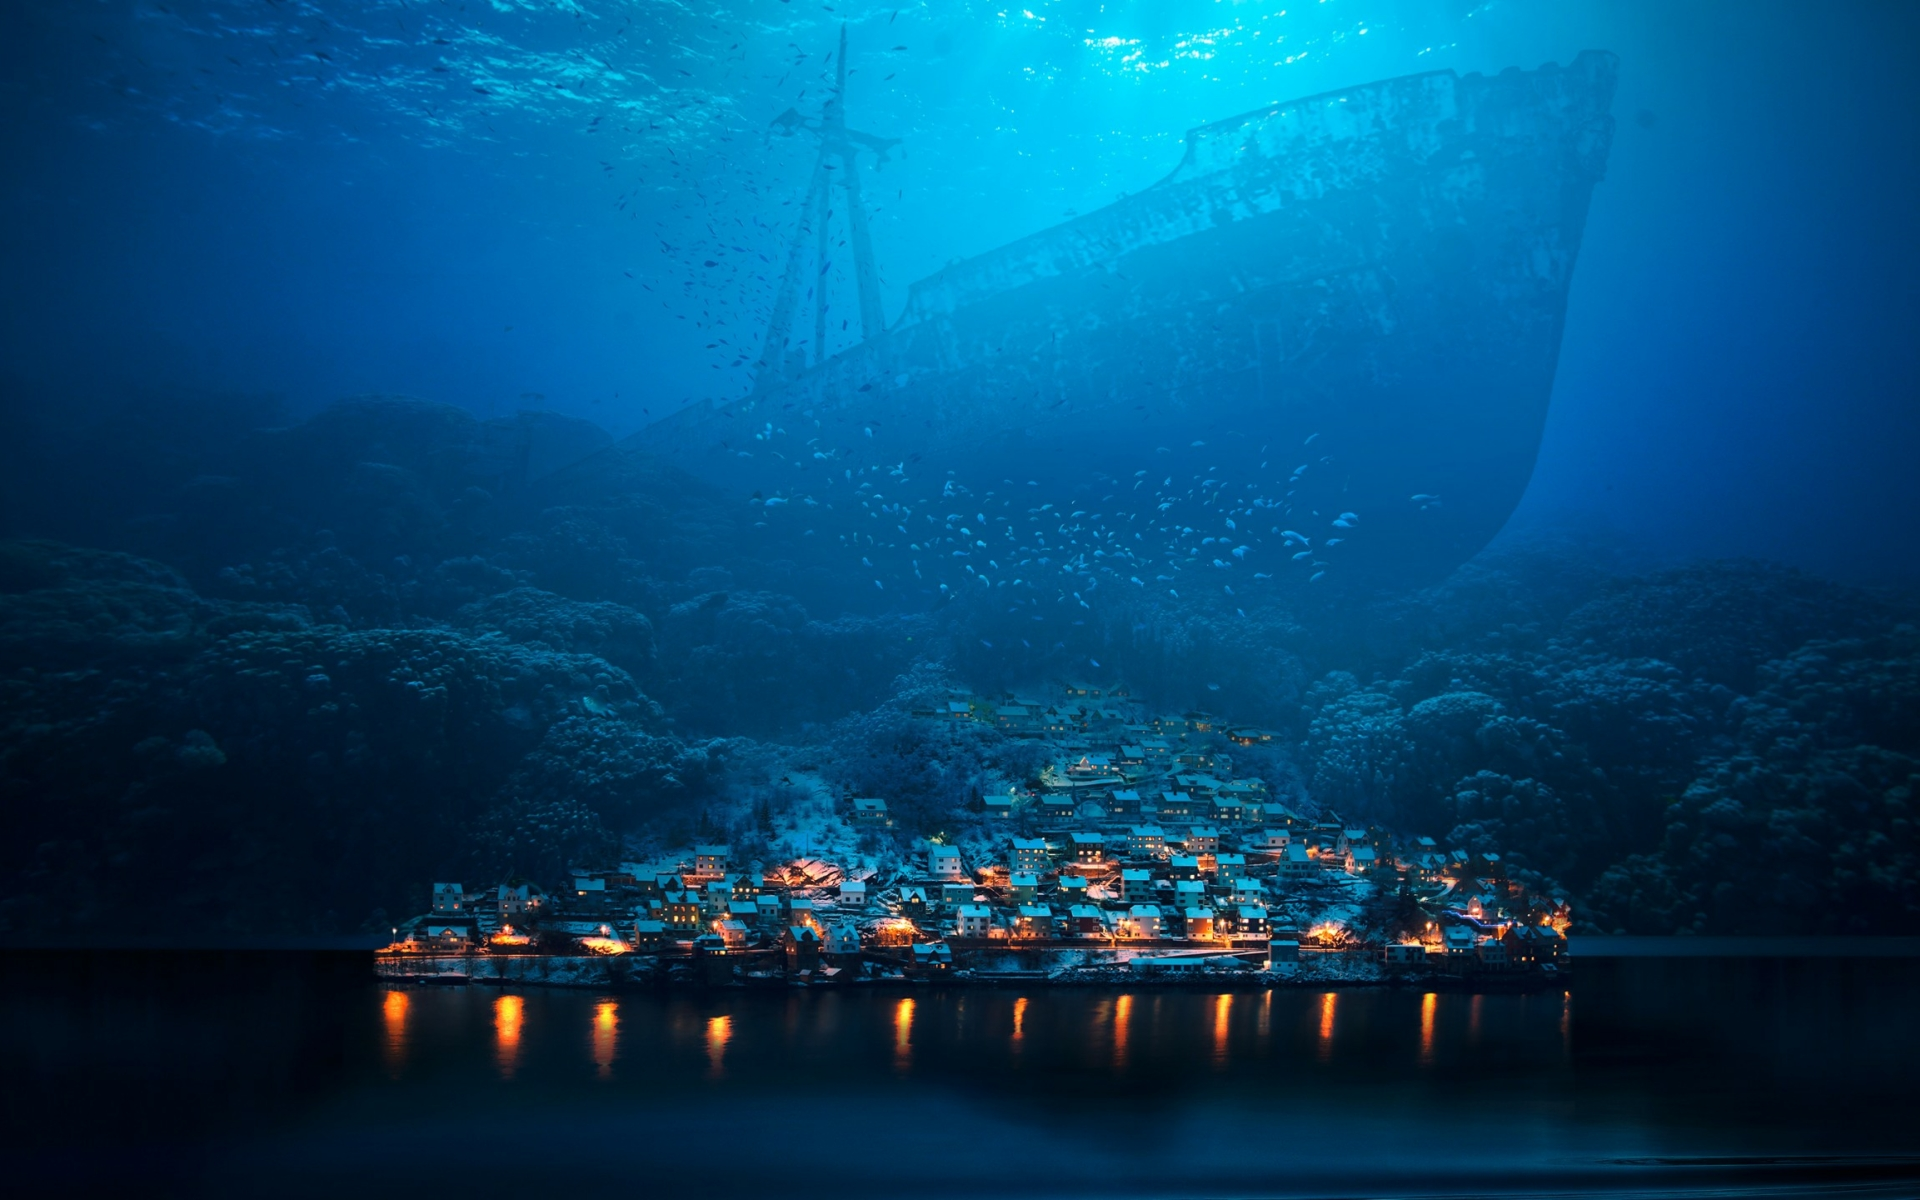 Ship And Town Underwater Full Hd 2k Wallpaper